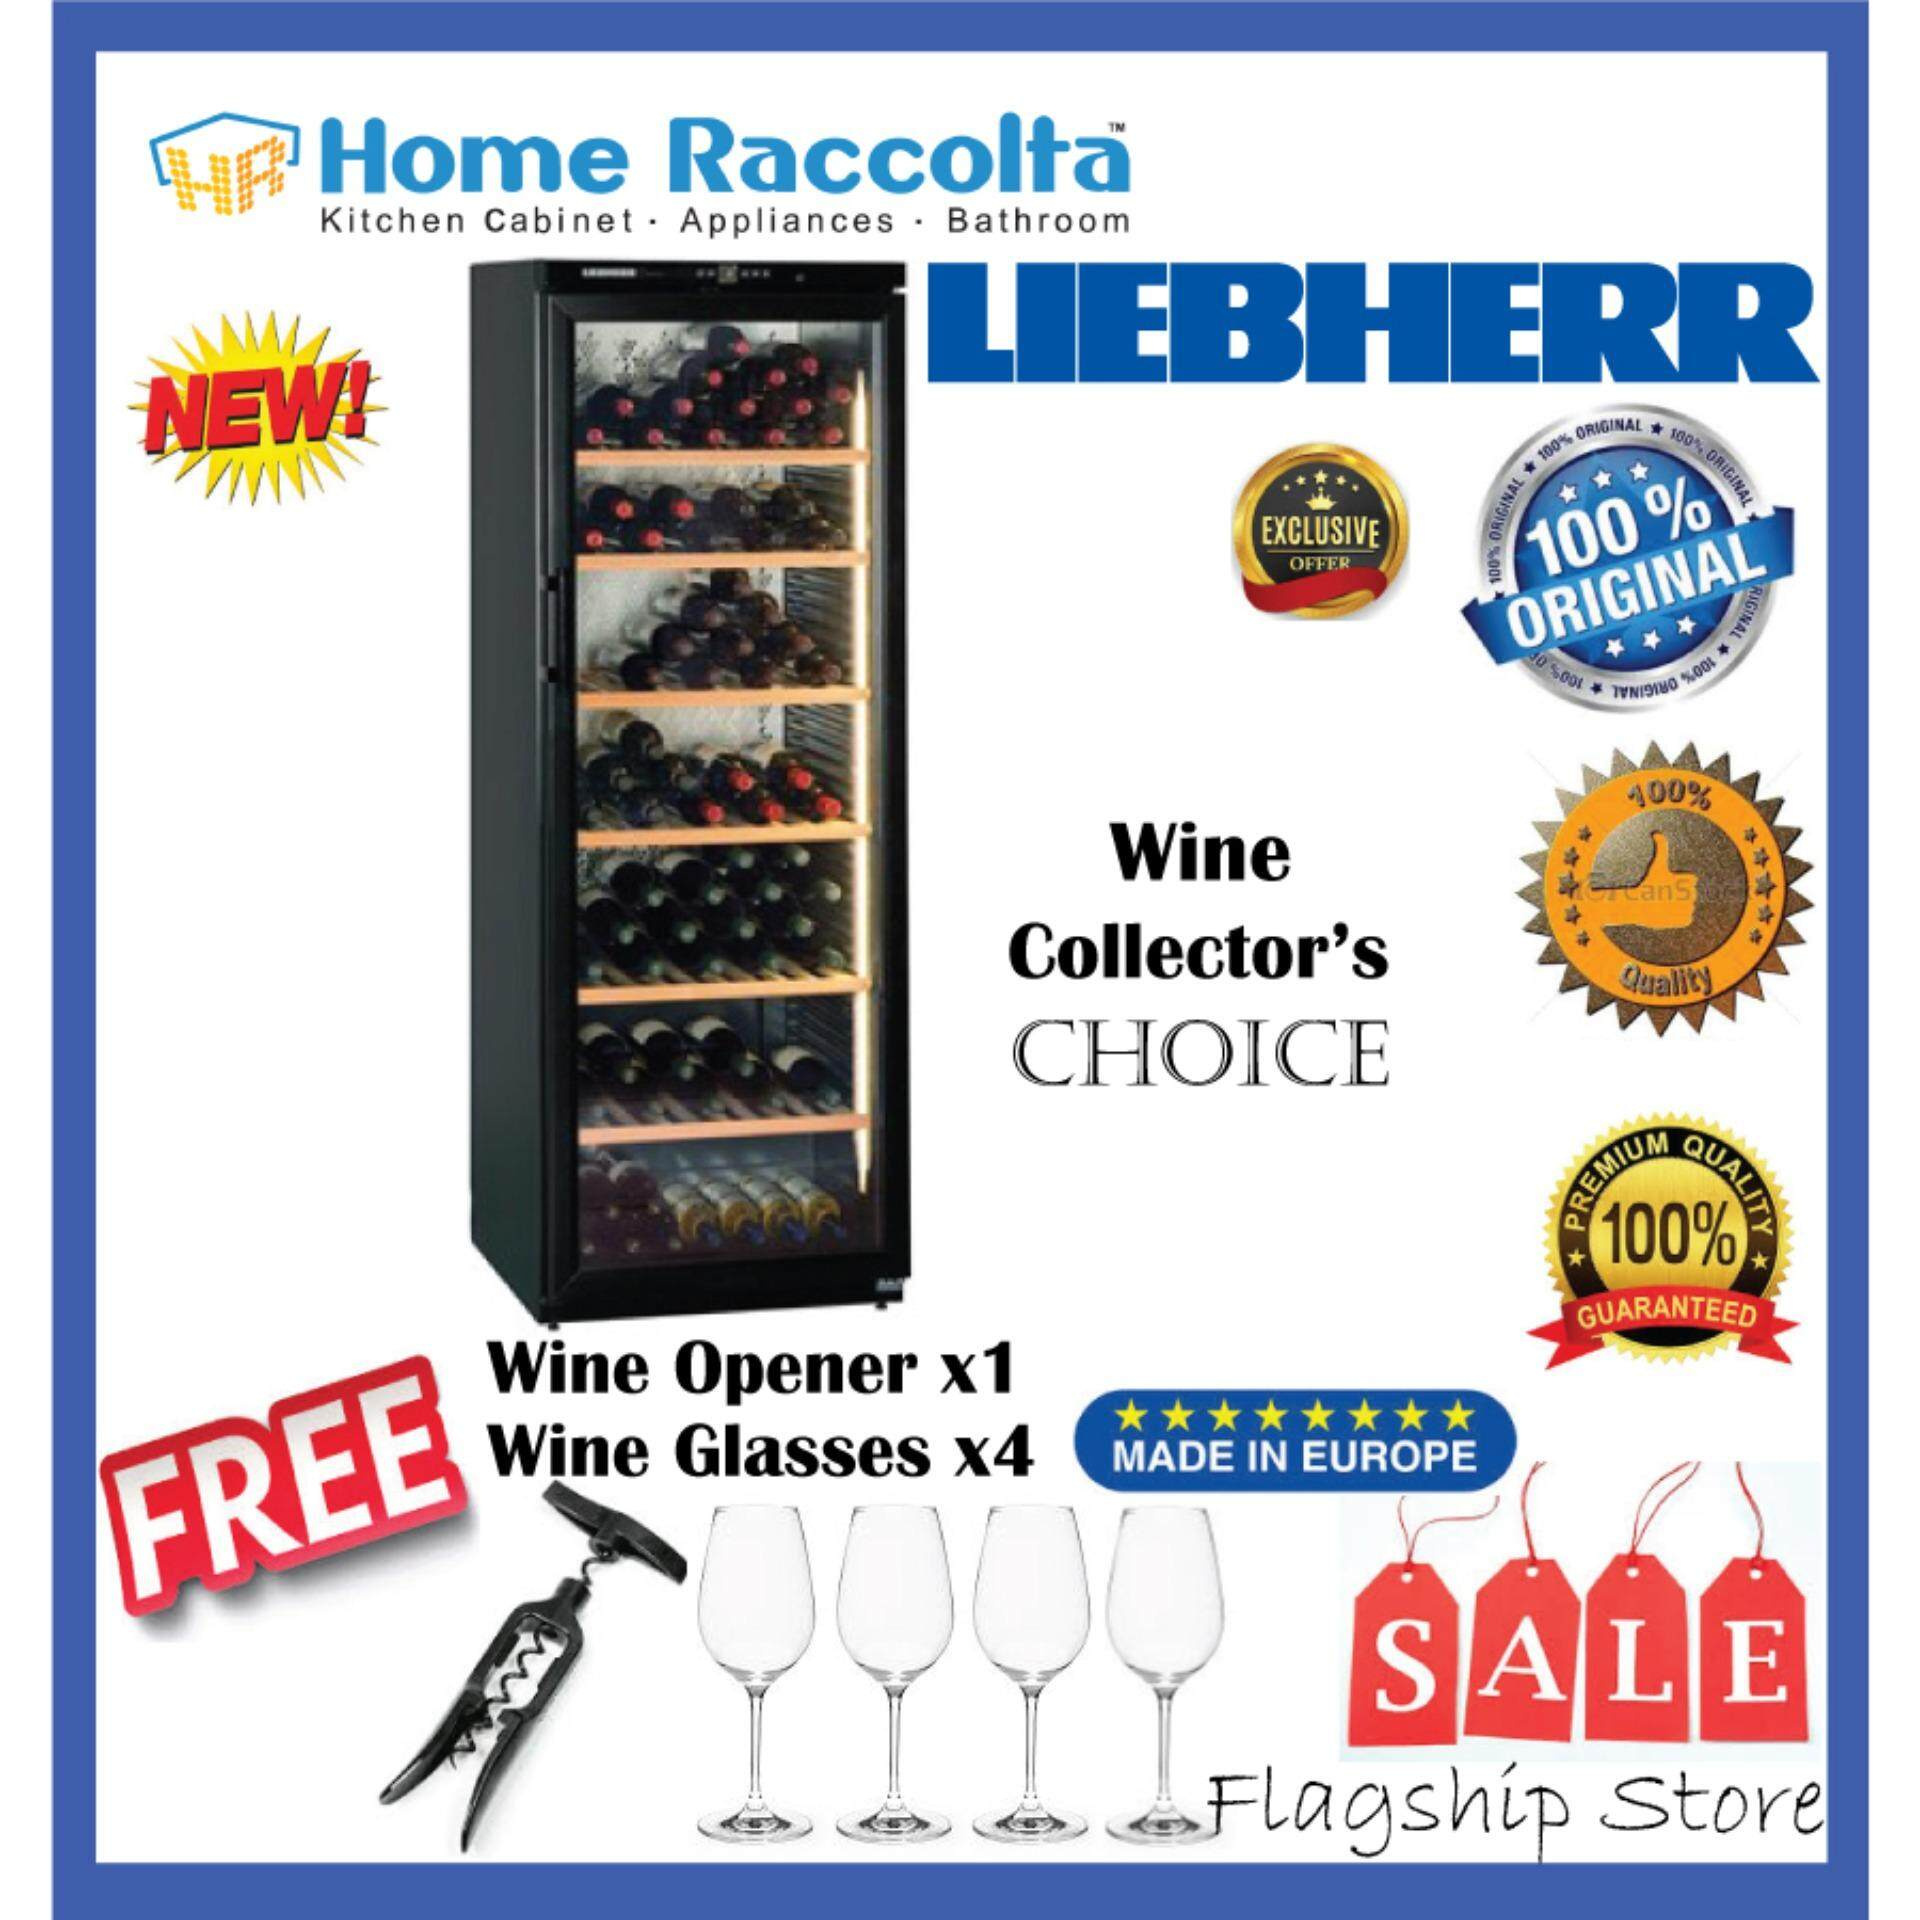 Liebherr Barrique Wine Chiller Wkb 4612 Barrique Wine Cellar Wkb4612 (186bottles) By Home Raccolta.